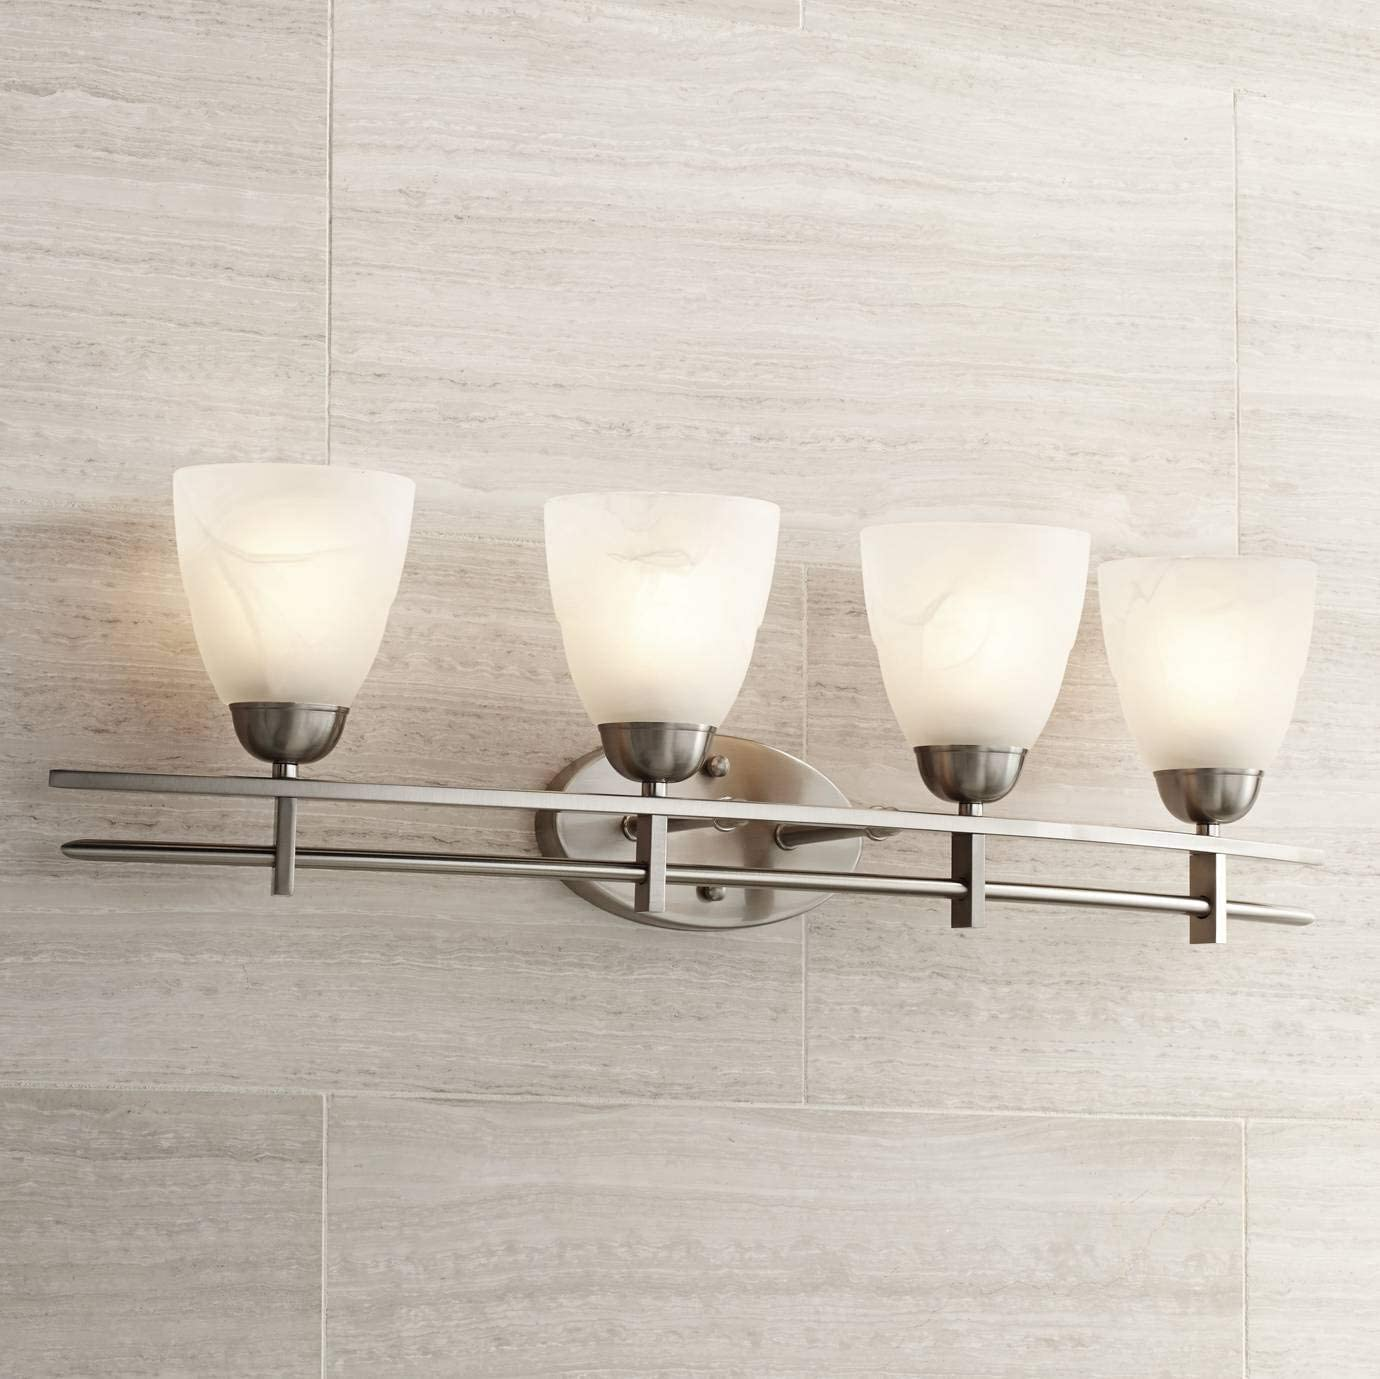 Deco Modern Wall Light Brushed Nickel Hardwired 33 Wide 4-Light Fixture Marbleized Glass Shades for Bathroom Vanity – Possini Euro Design